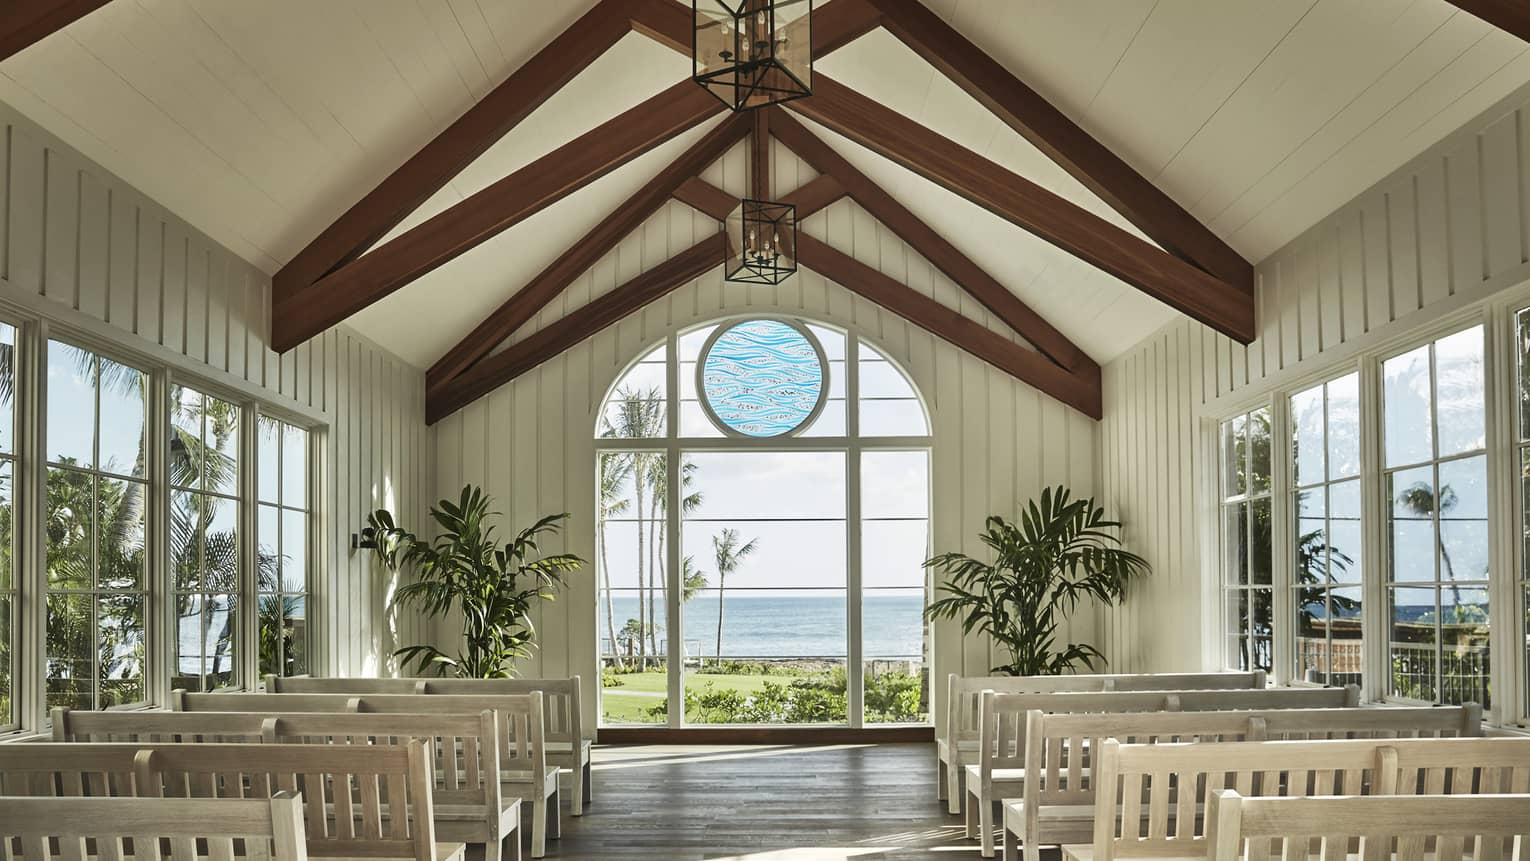 The Wedding Chapel.Four Seasons Hotels And Resorts Luxury Hotels Four Seasons